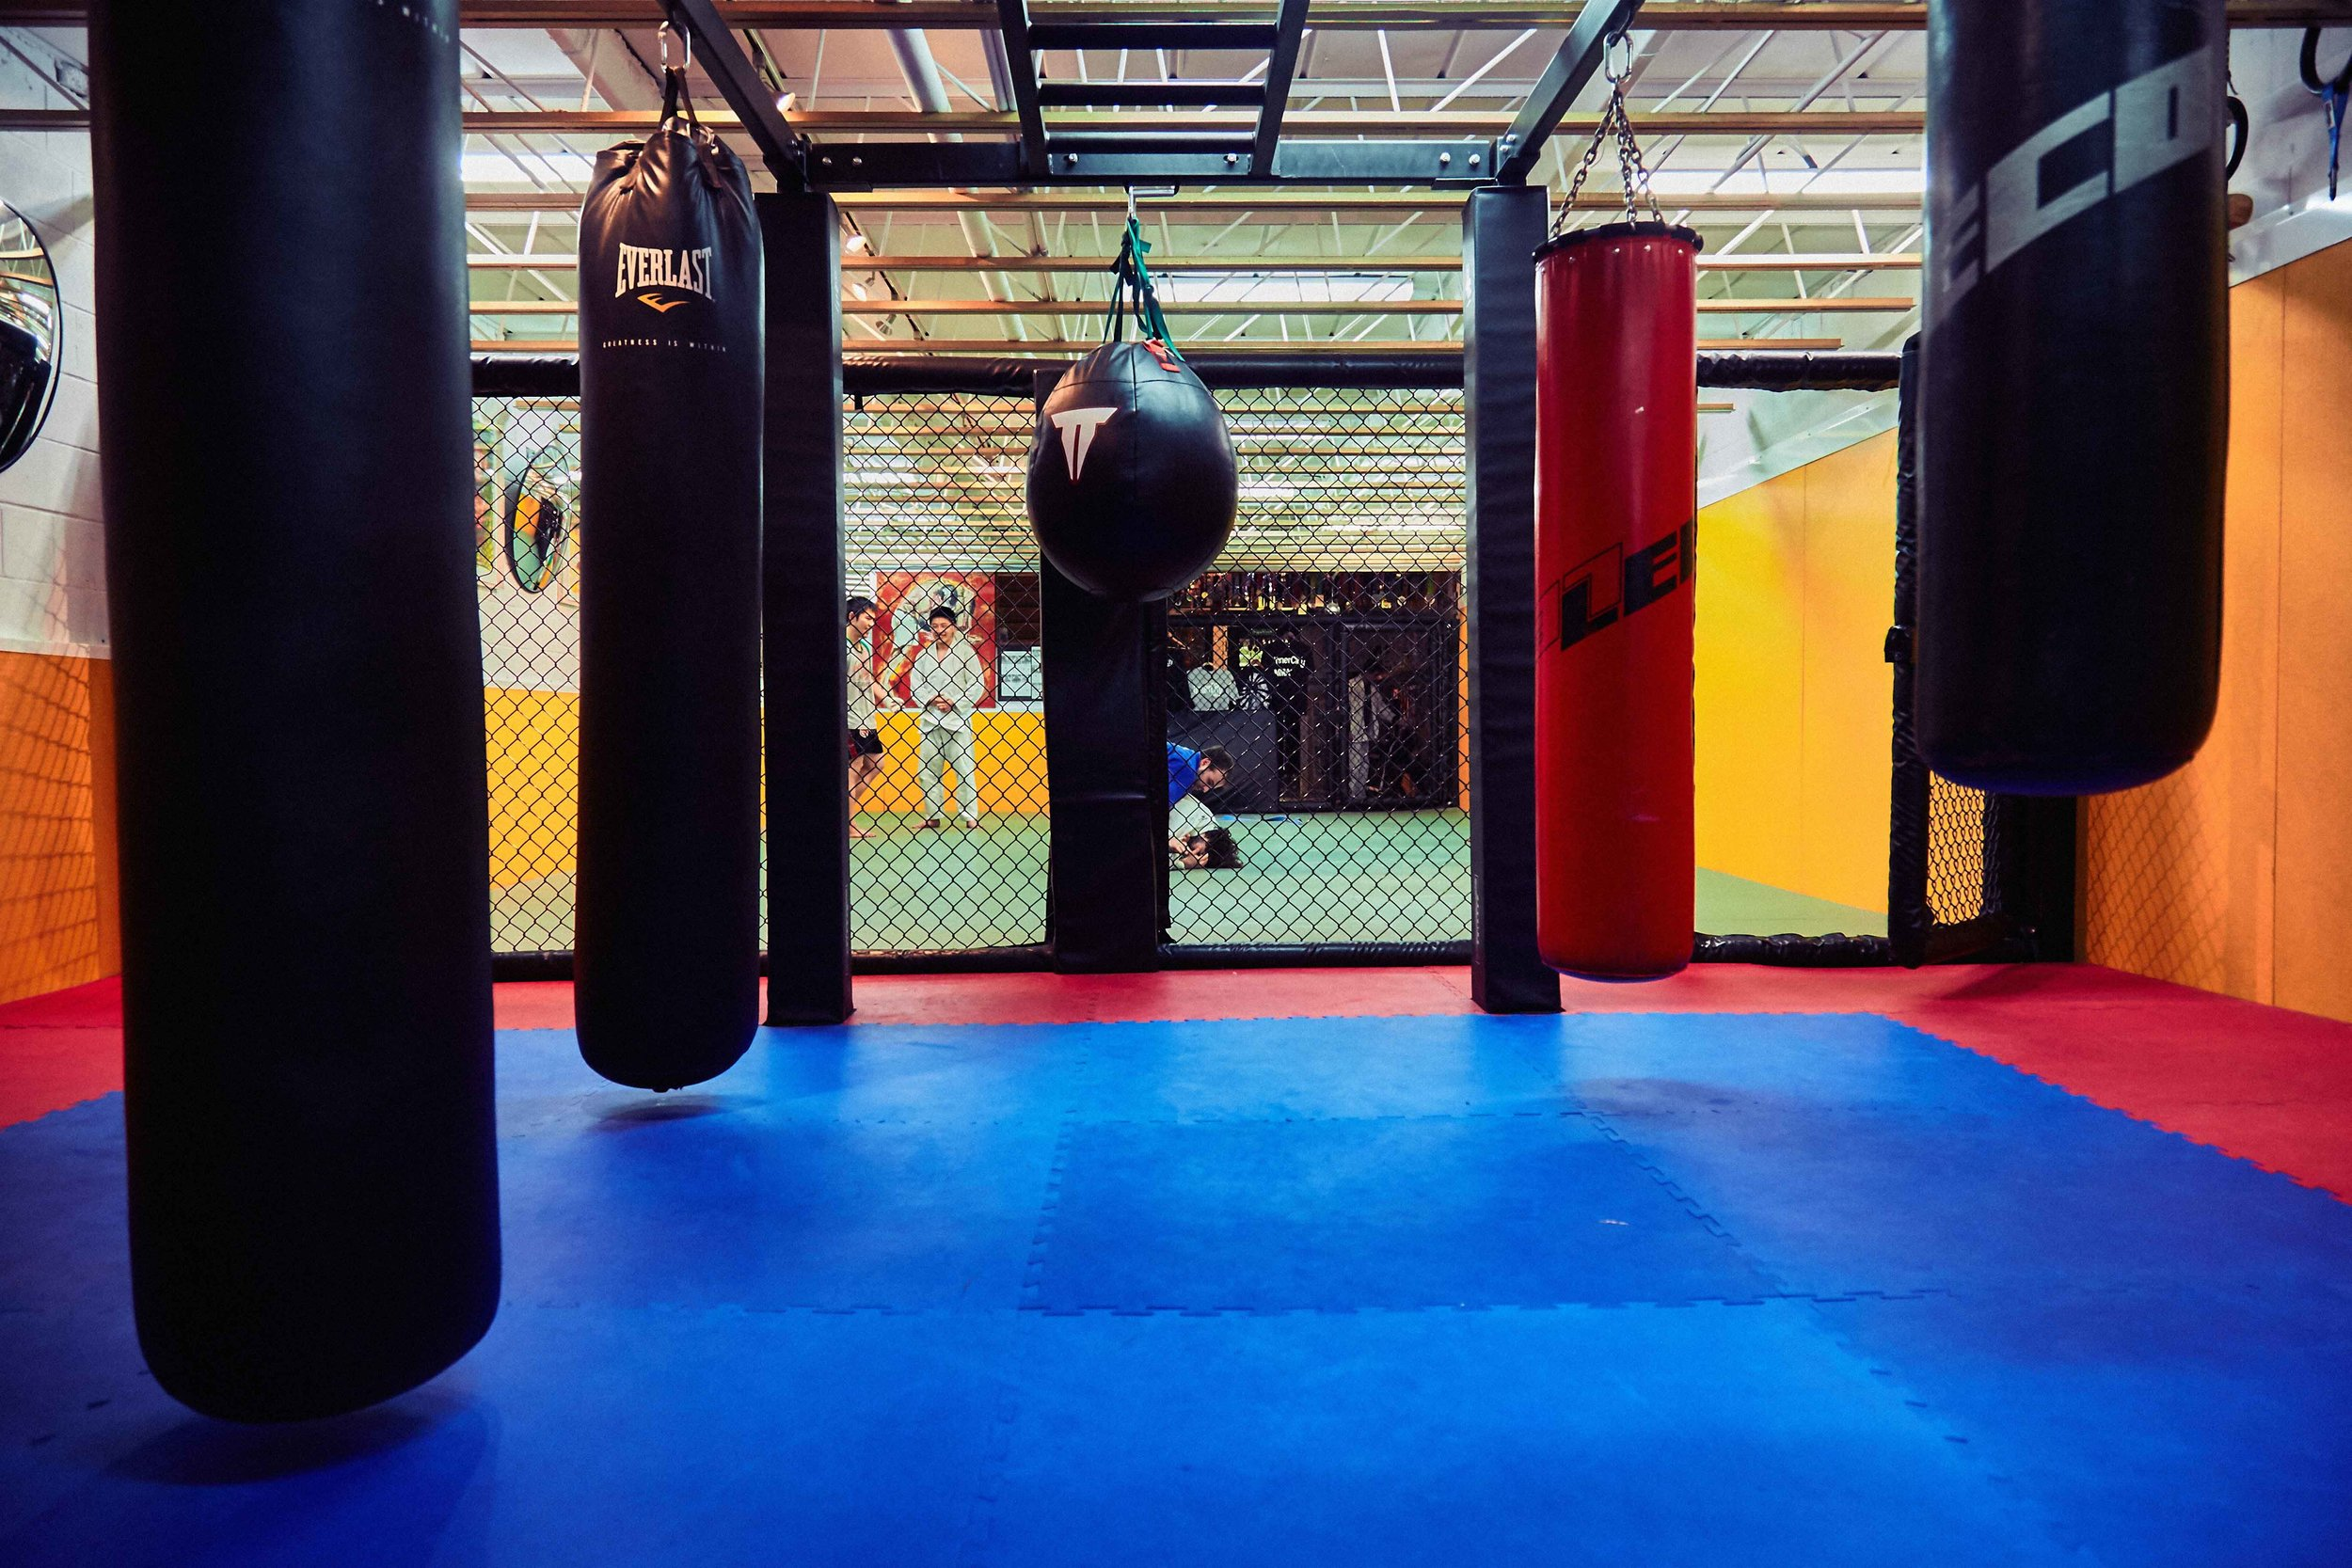 Our jungle gym is ready.Are you? - Equipped with kicking sheilds, muay thai pads, boxing mitts, slip bag, duck line, padded walls, olympic rings, Indian Clubs, monkey bars, double end ball, skipping ropes, pylons, concept 2 rower, free weights, squat bar, 2 olympic bars, lifing platform, squat rack, juggling clubs & balls (coordination training), AND SO MUCH MORE